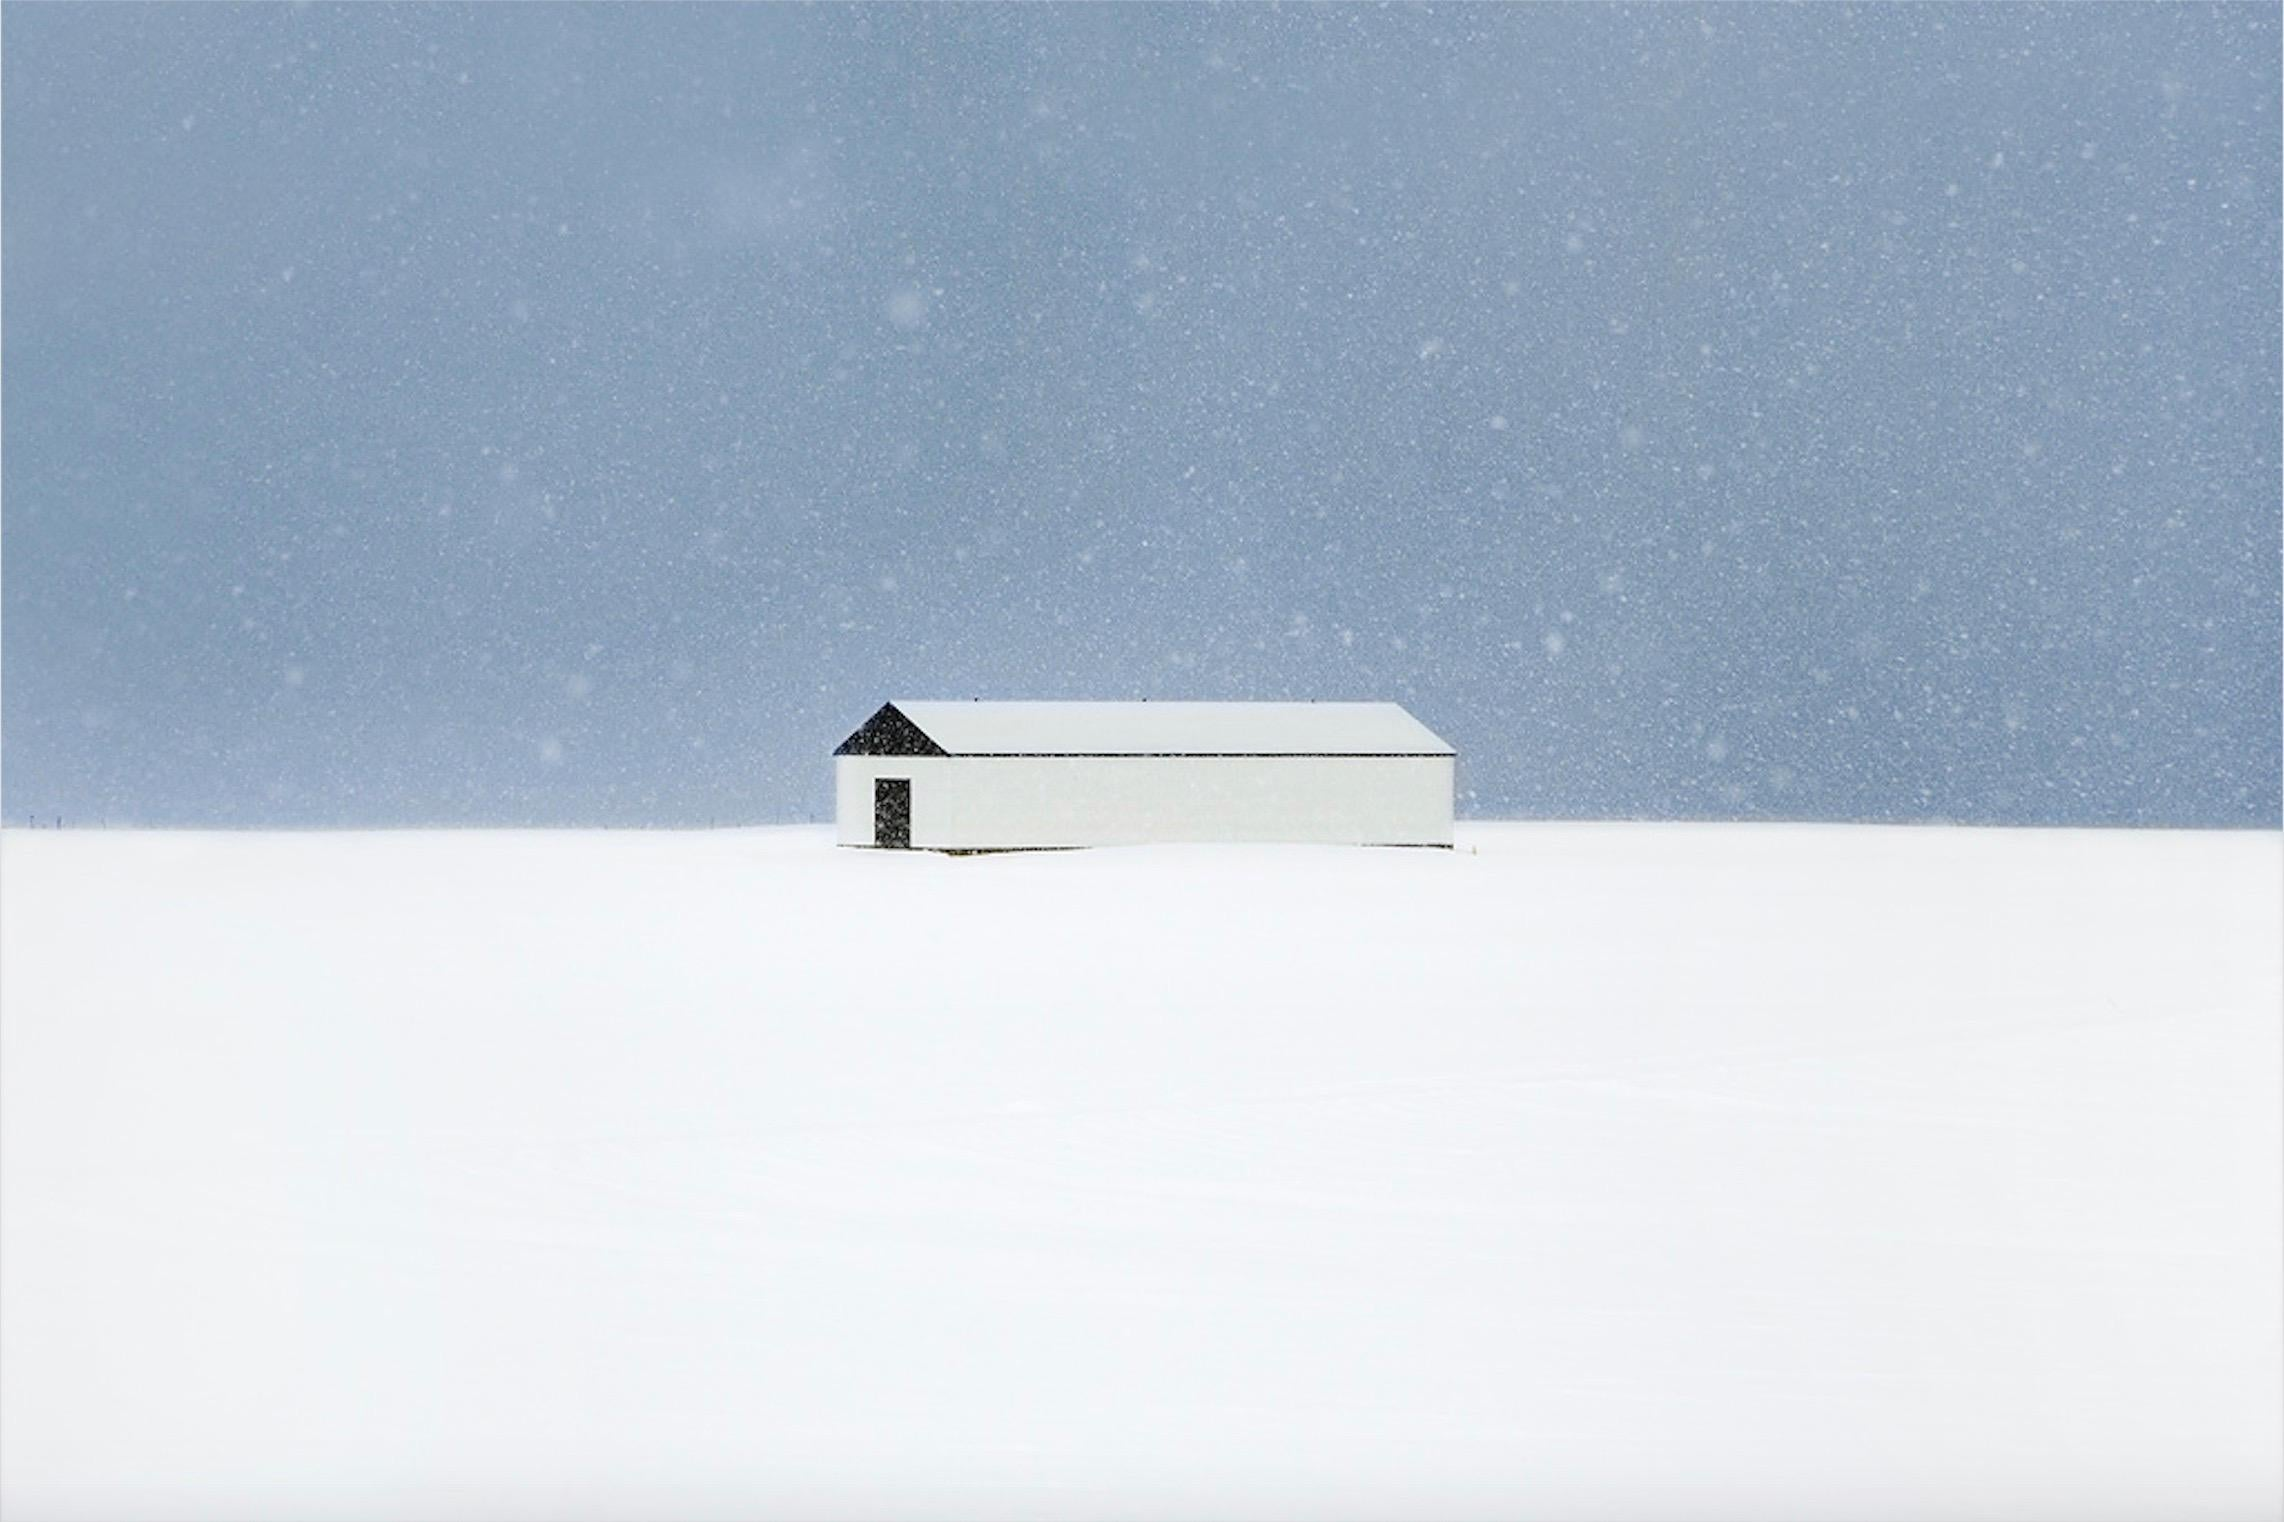 The Farm, Snjór series by Christophe Jacrot - Winter photography, Iceland